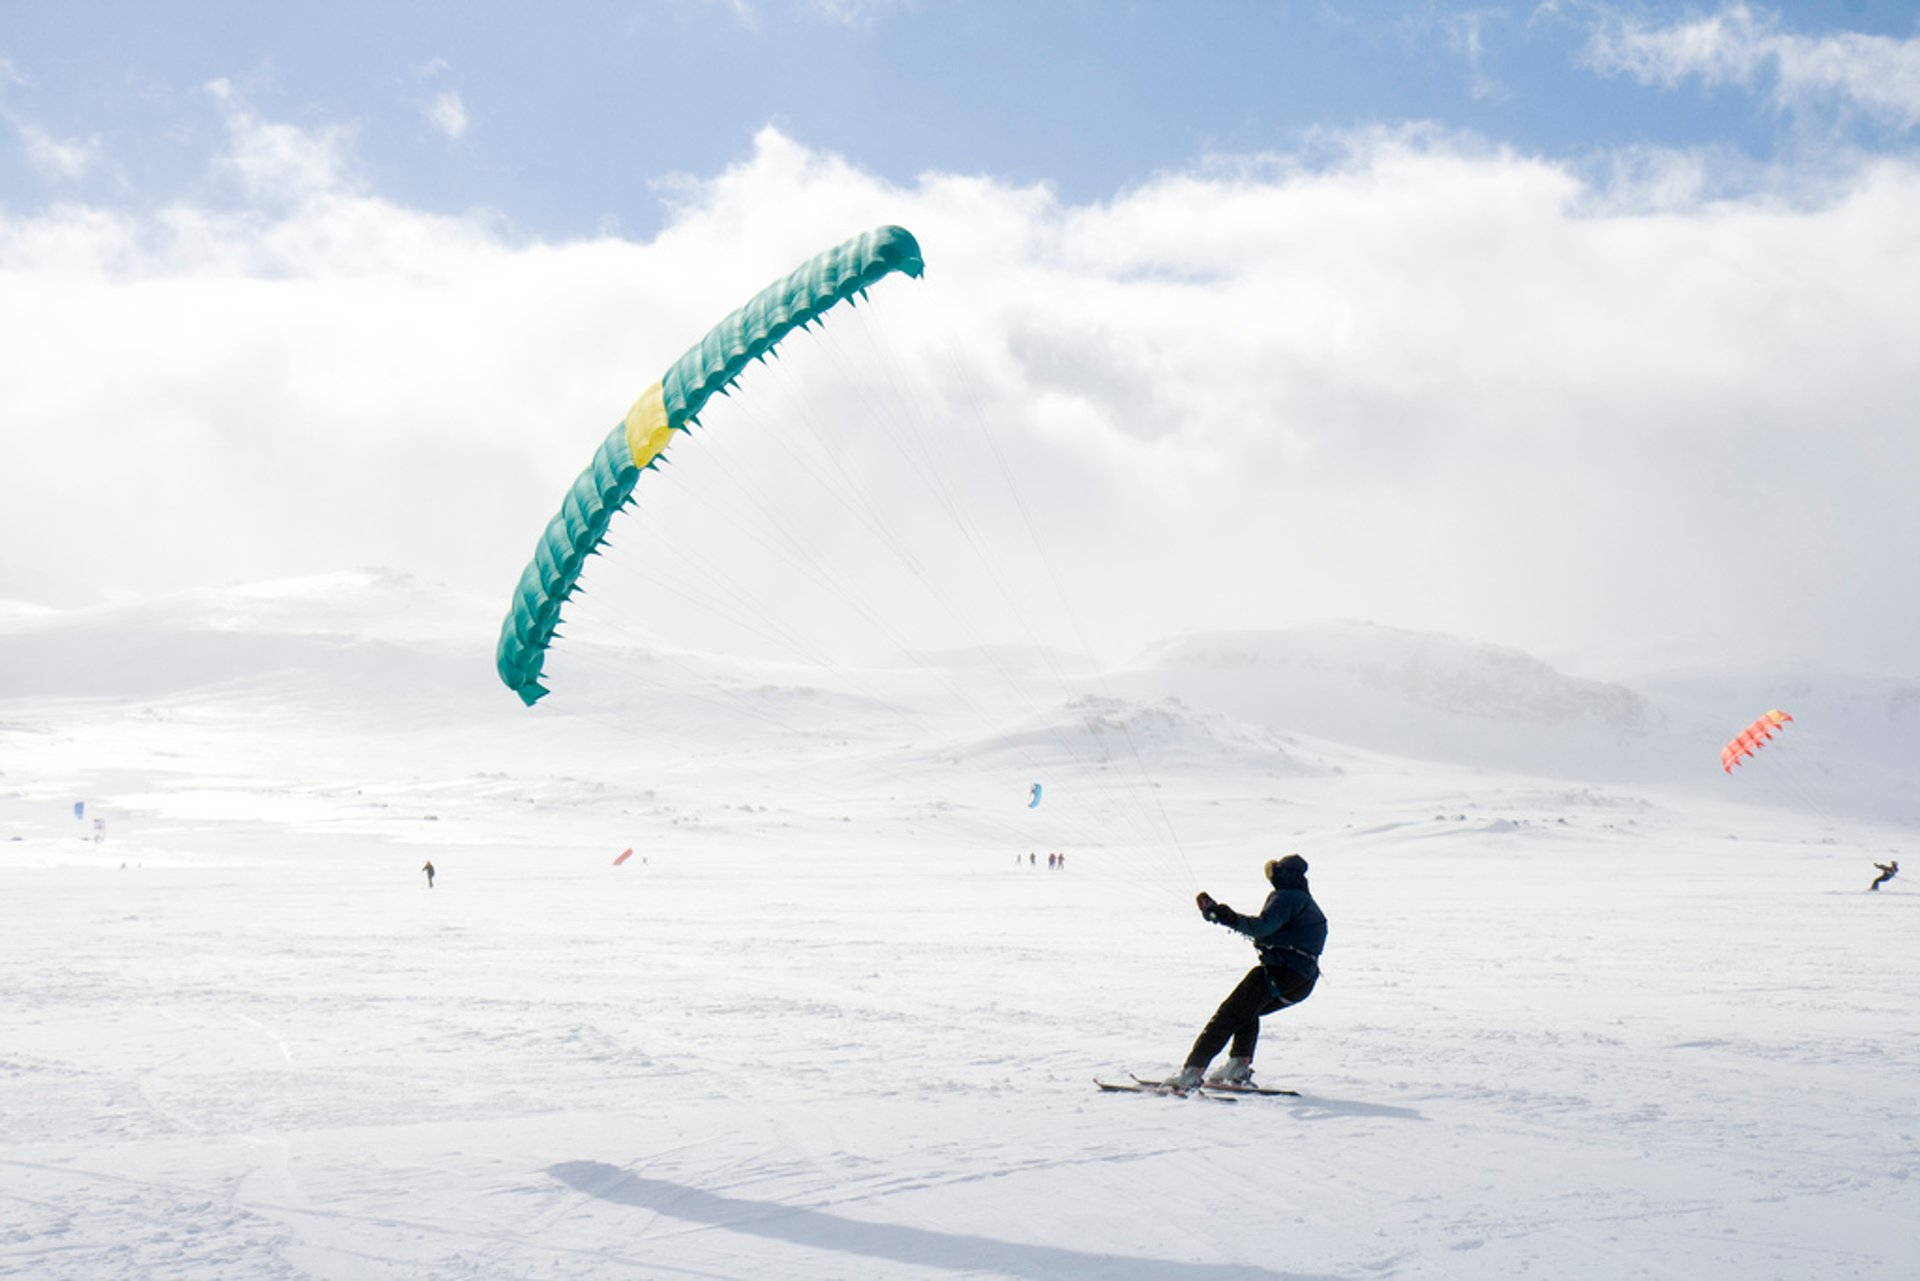 Snow Kiting in Norway 2019 - Best Time